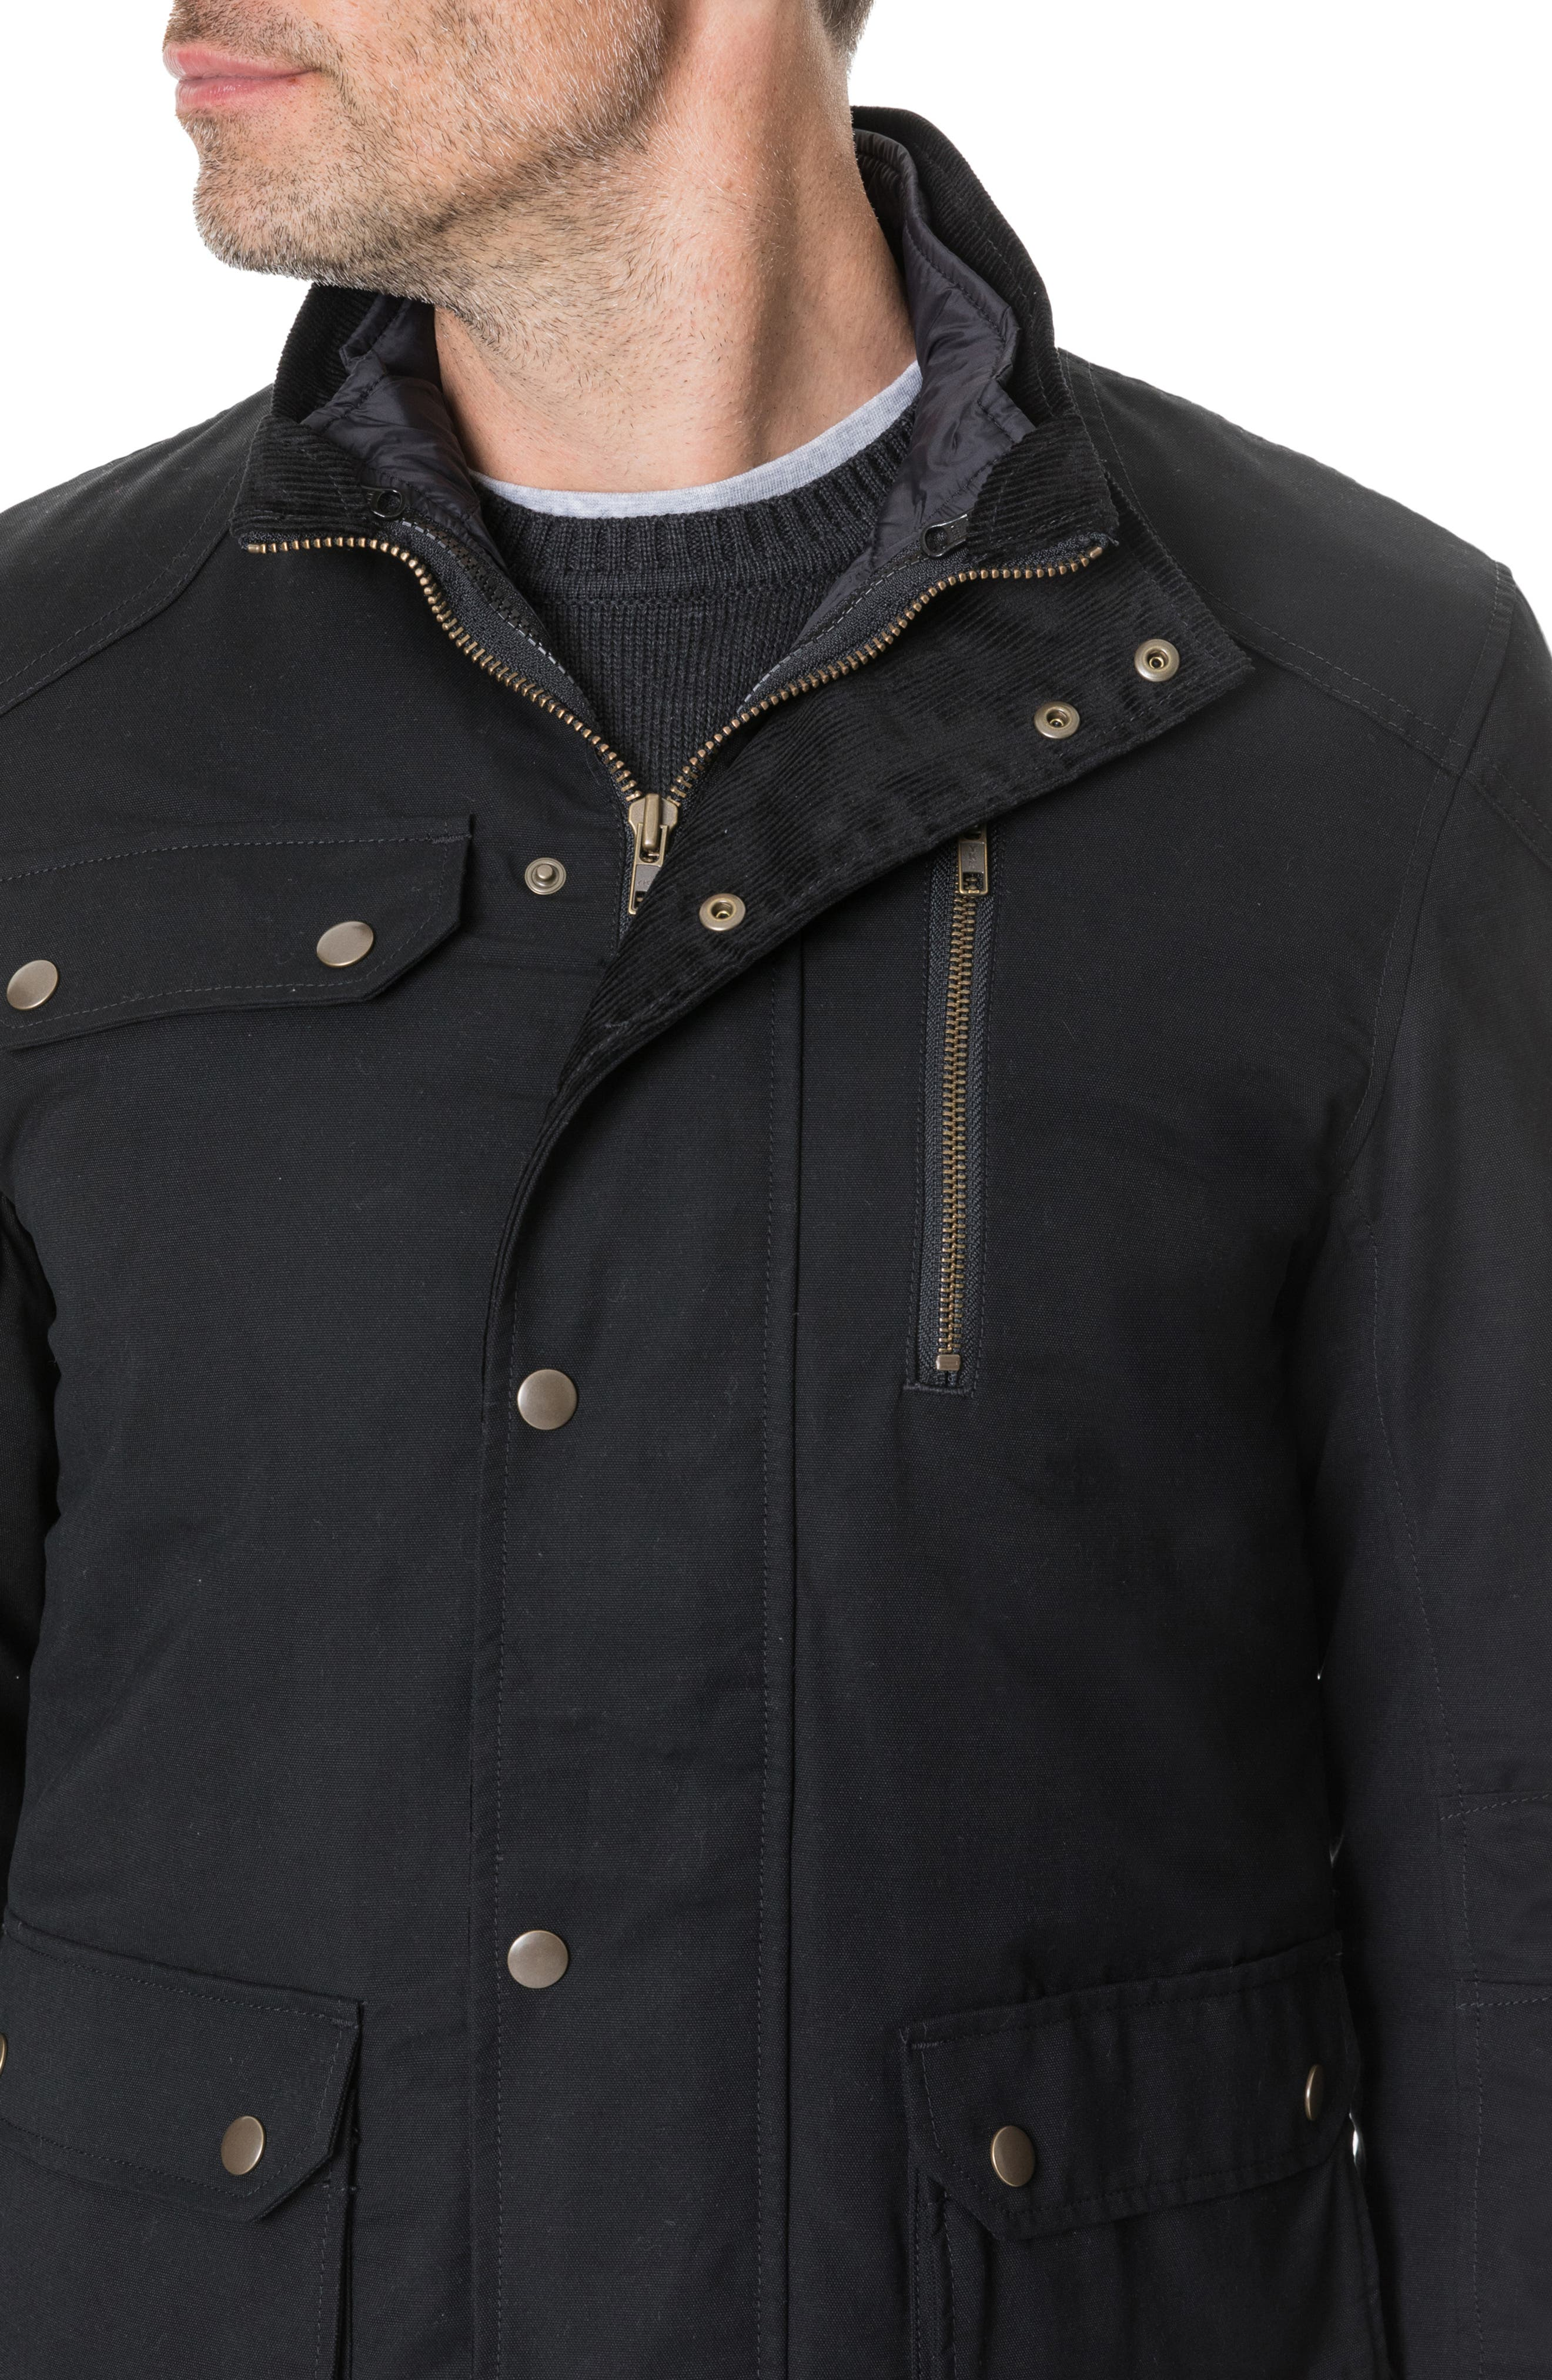 'Harper' Water Resistant 3-in-1 Waxed Canvas Jacket,                             Alternate thumbnail 9, color,                             ONYX